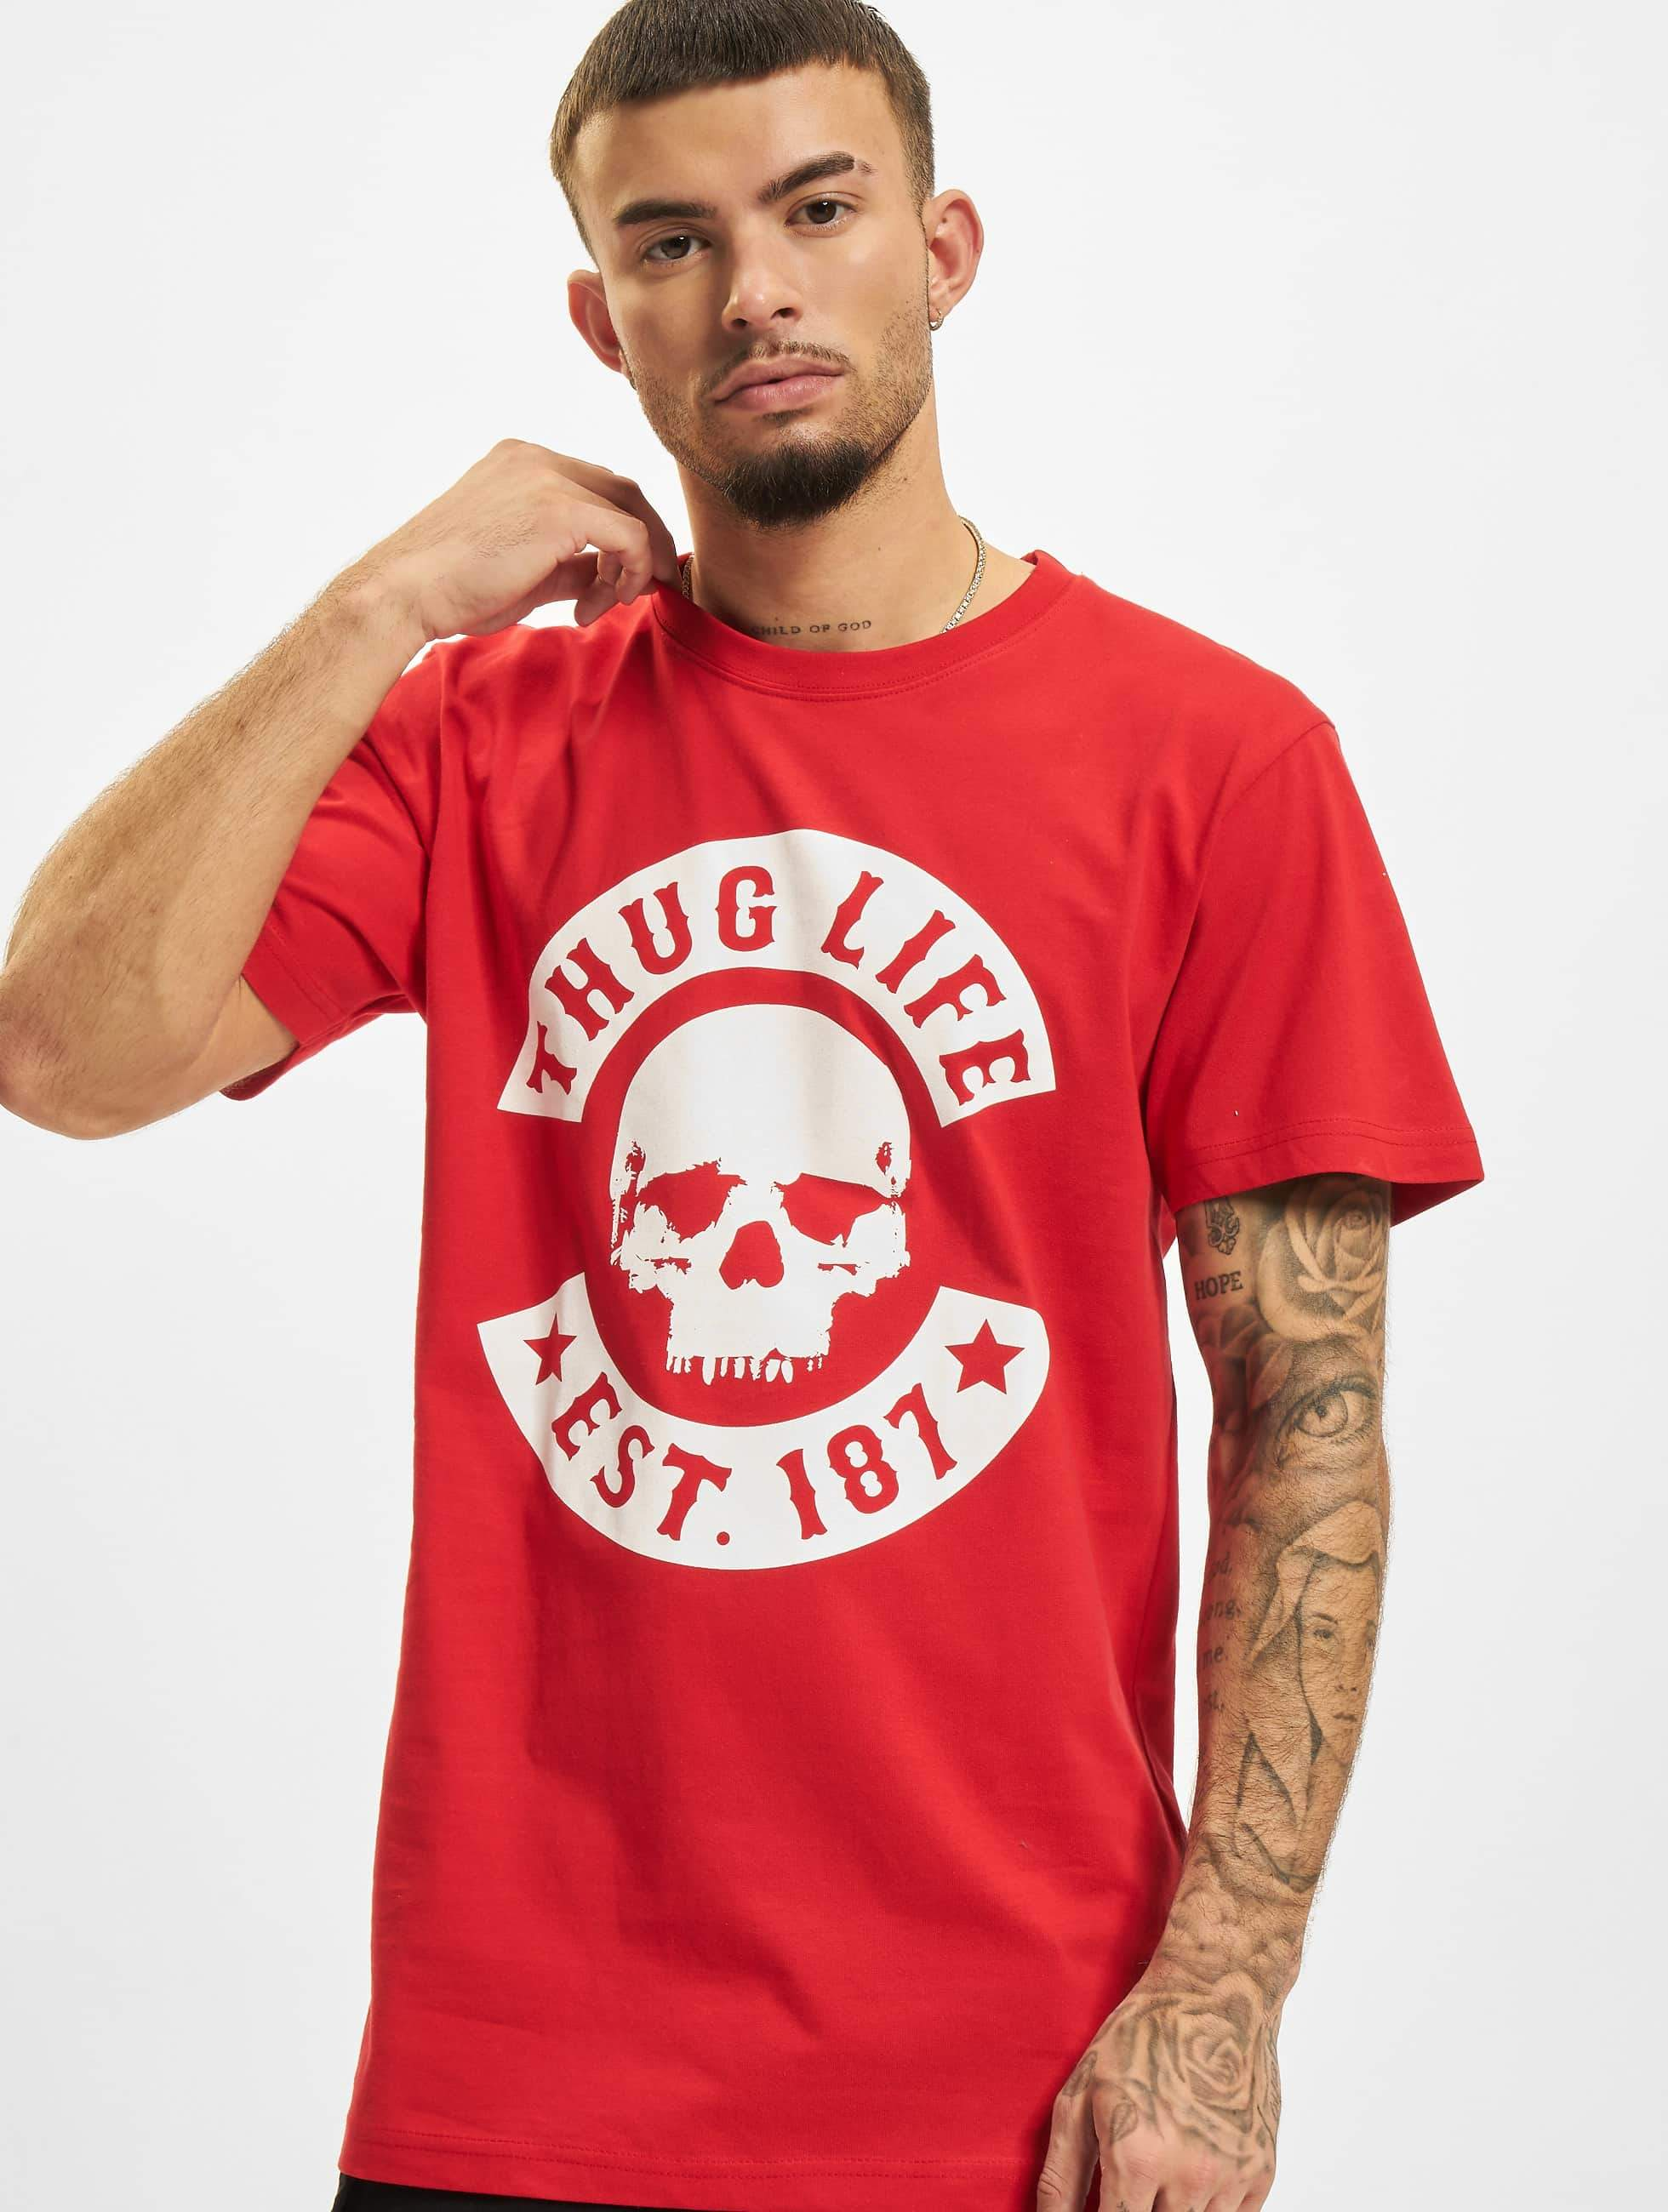 Thug Life / T-Shirt B.Skull in red 3XL